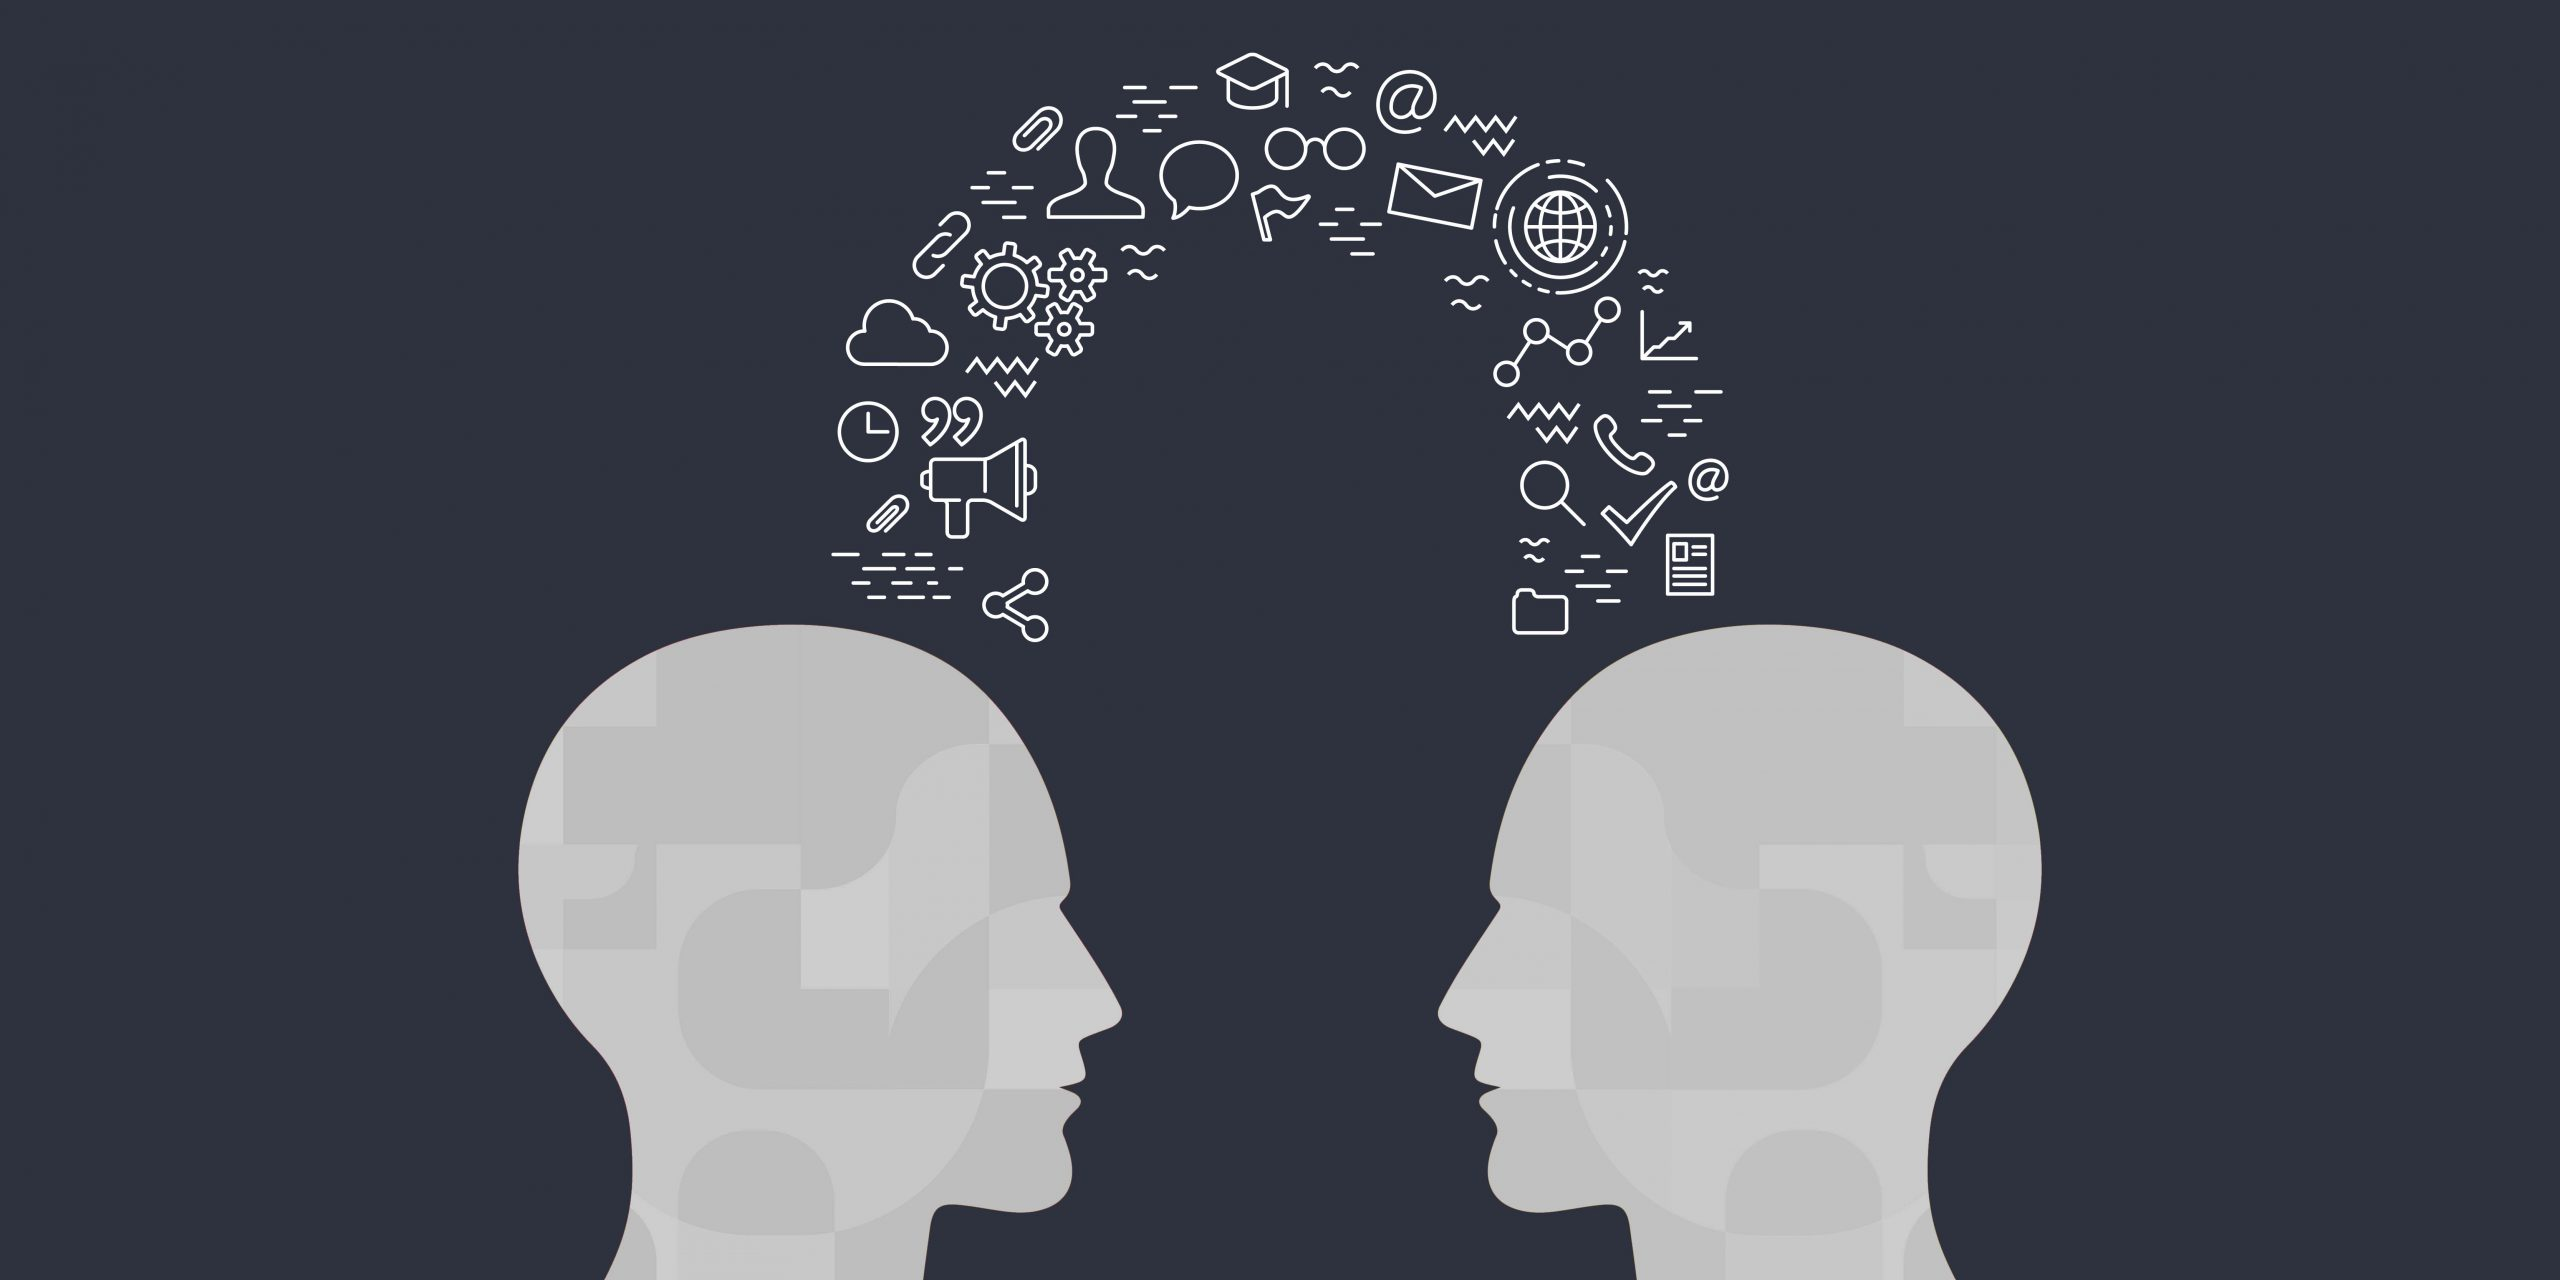 two abstract heads sharing knowledge